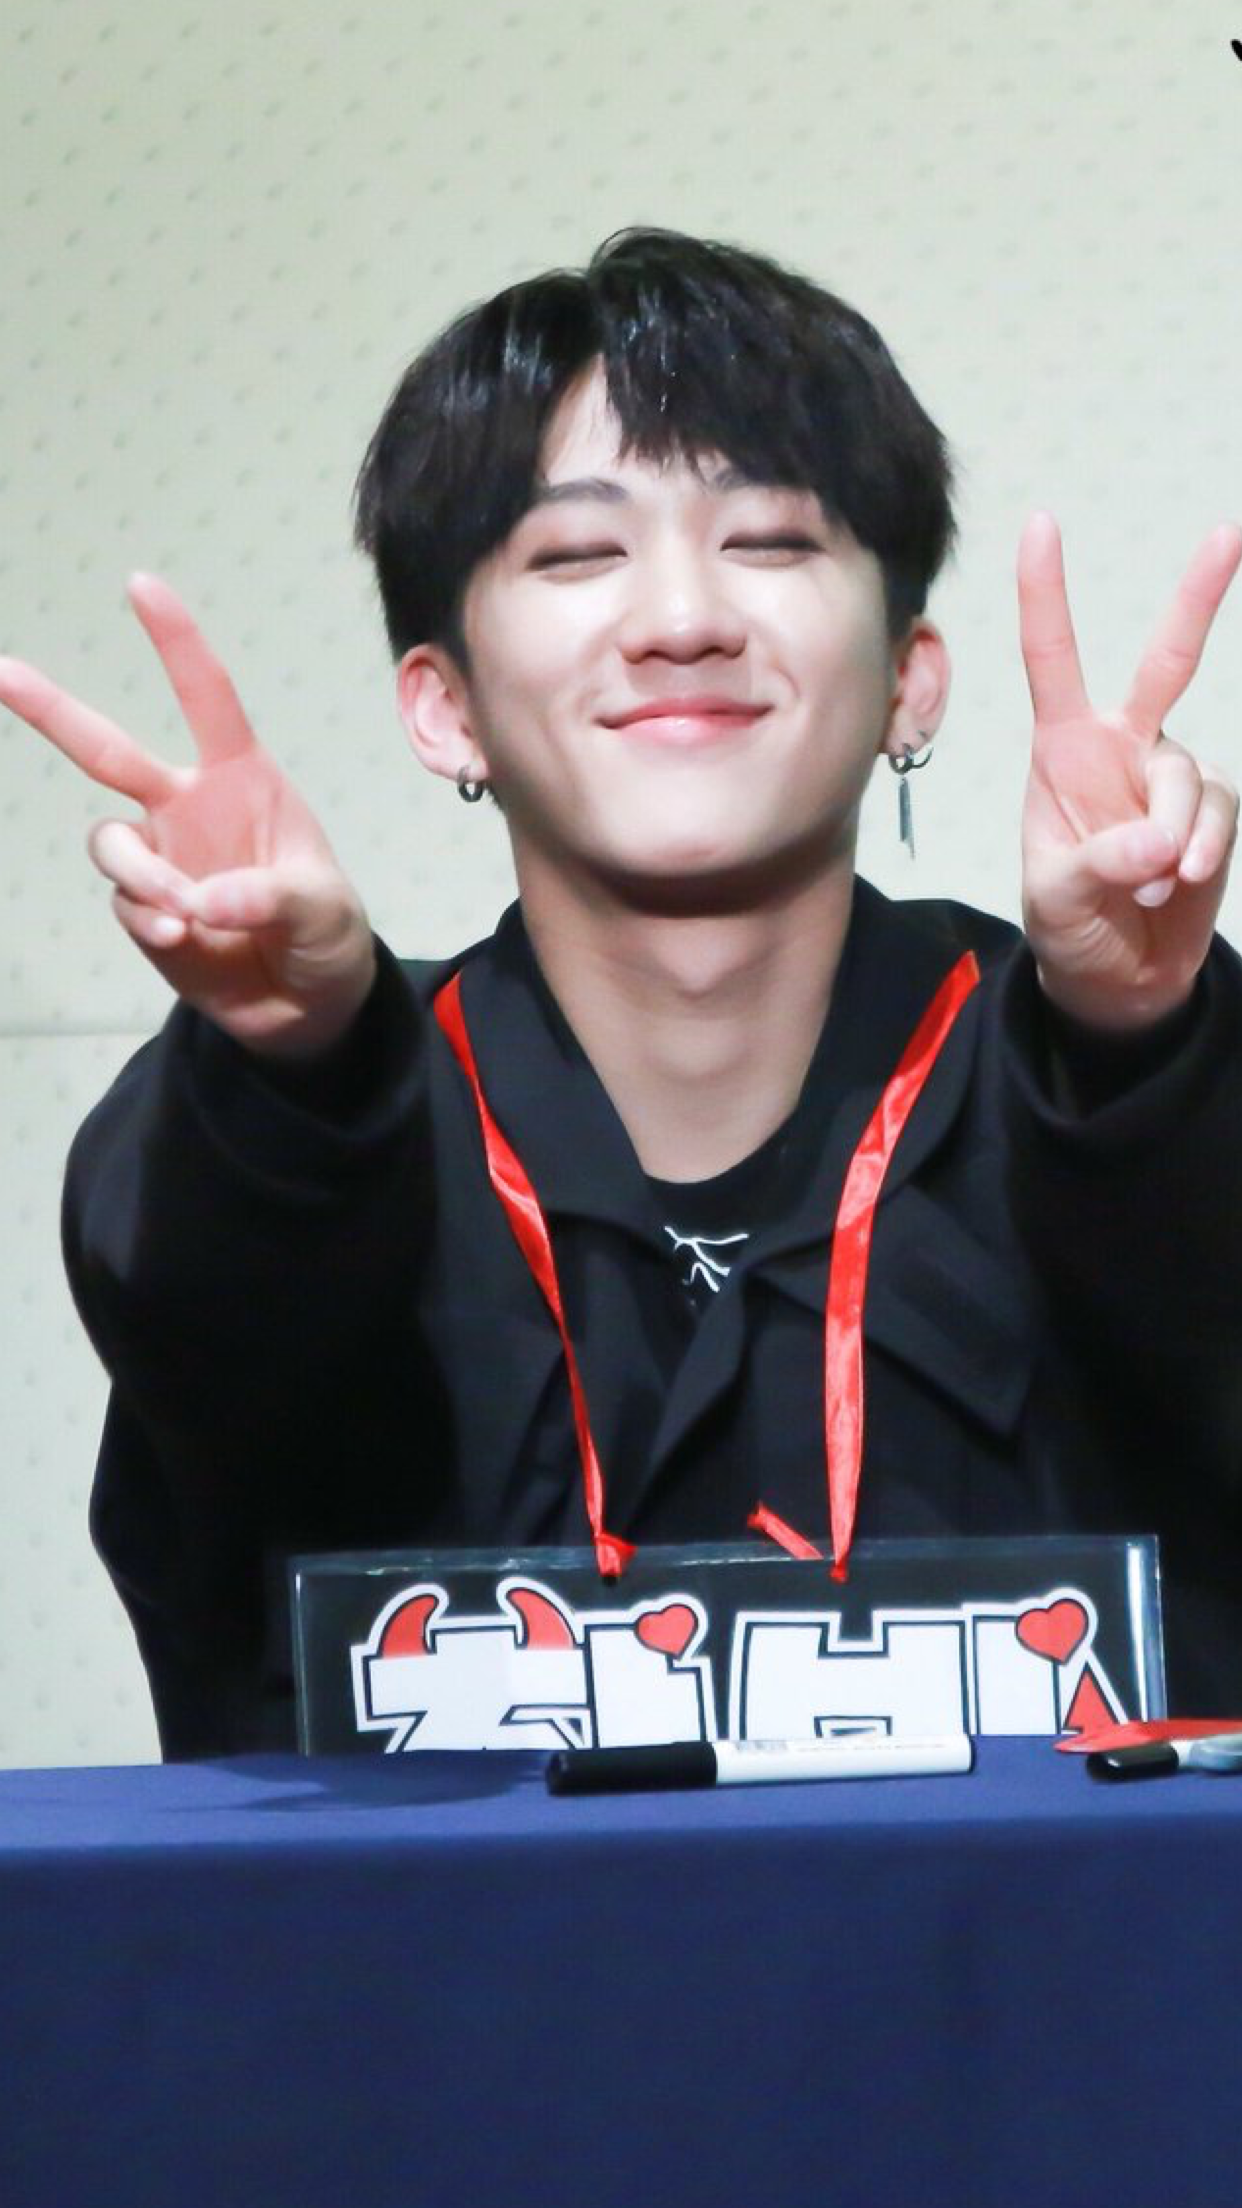 Pin by Lilbean3 on Stray kids Boy groups, Cool kids